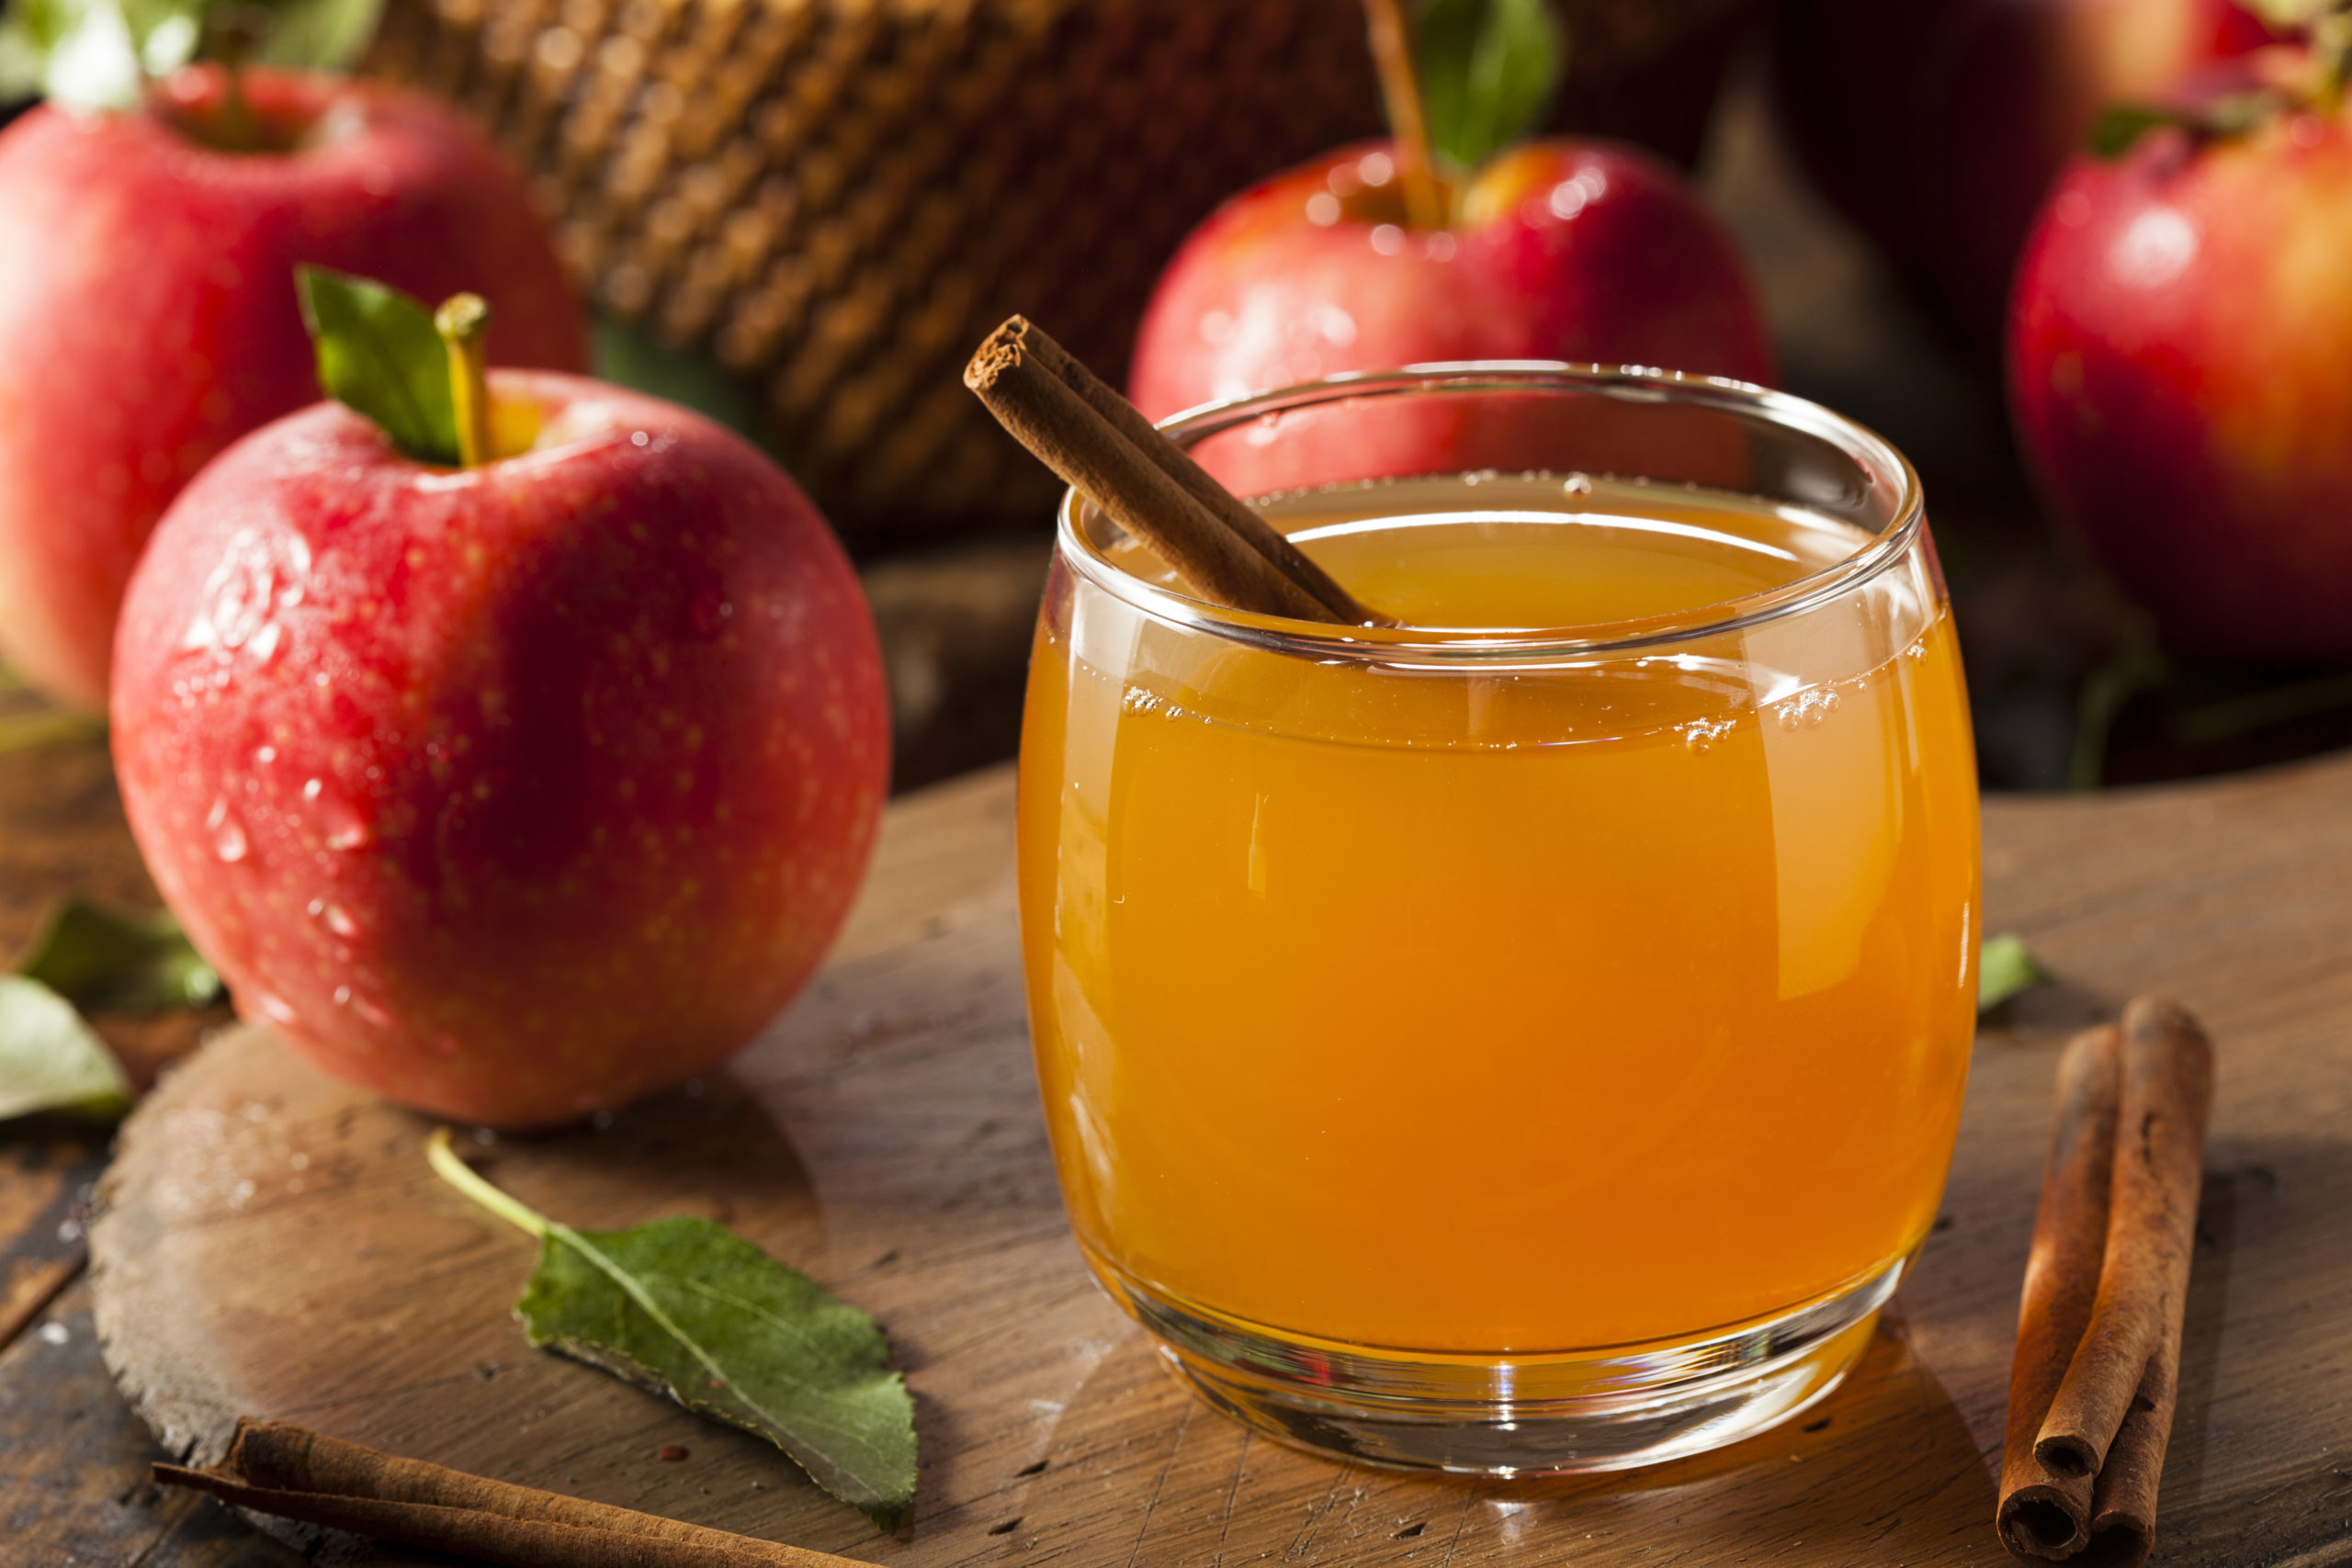 How Long Does Apple Cider Last